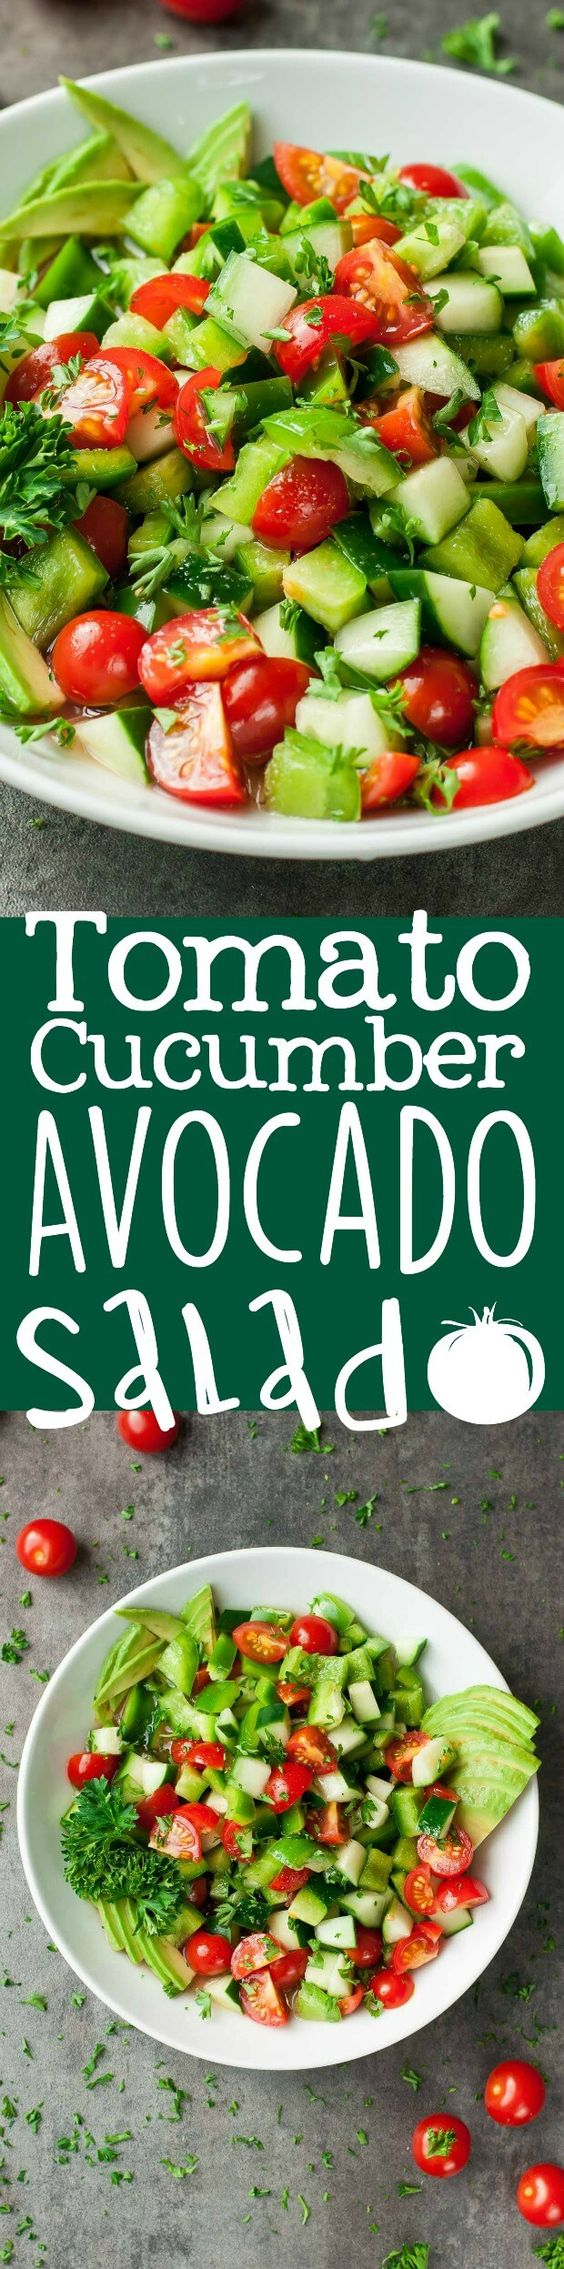 You're just a few minutes away from a tasty restaurant-quality salad with this healthy Tomato Cucumber and Avocado Salad. It's light, fresh, and full of flavor!